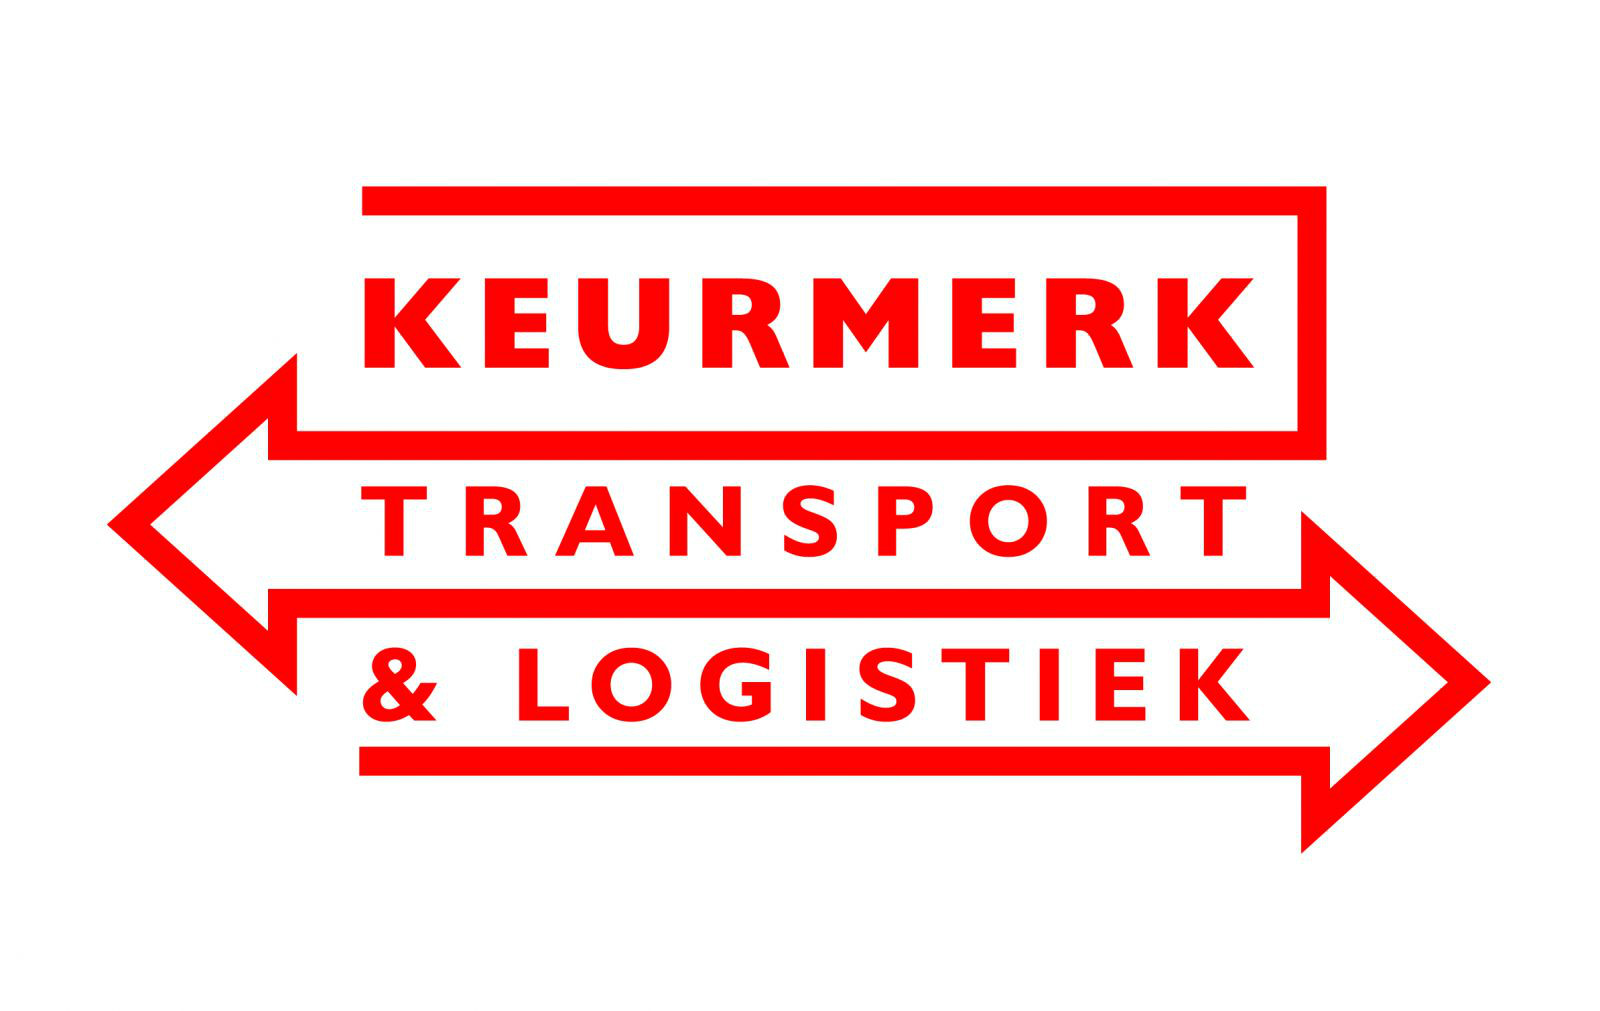 Keurmerk Transport & Logistiek